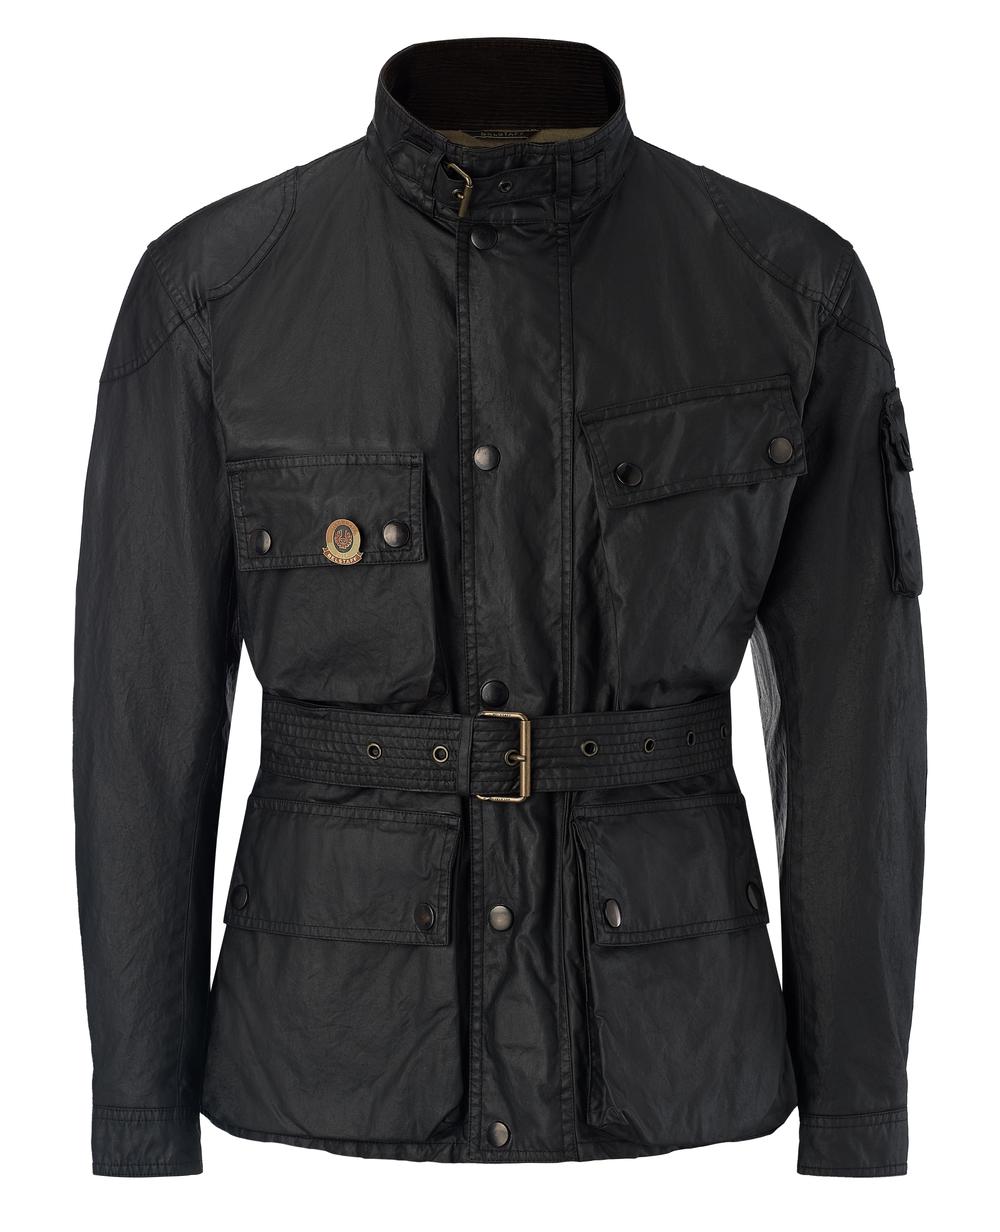 Beckham for Belstaff_Marshfield Jacket_Black_1.jpg